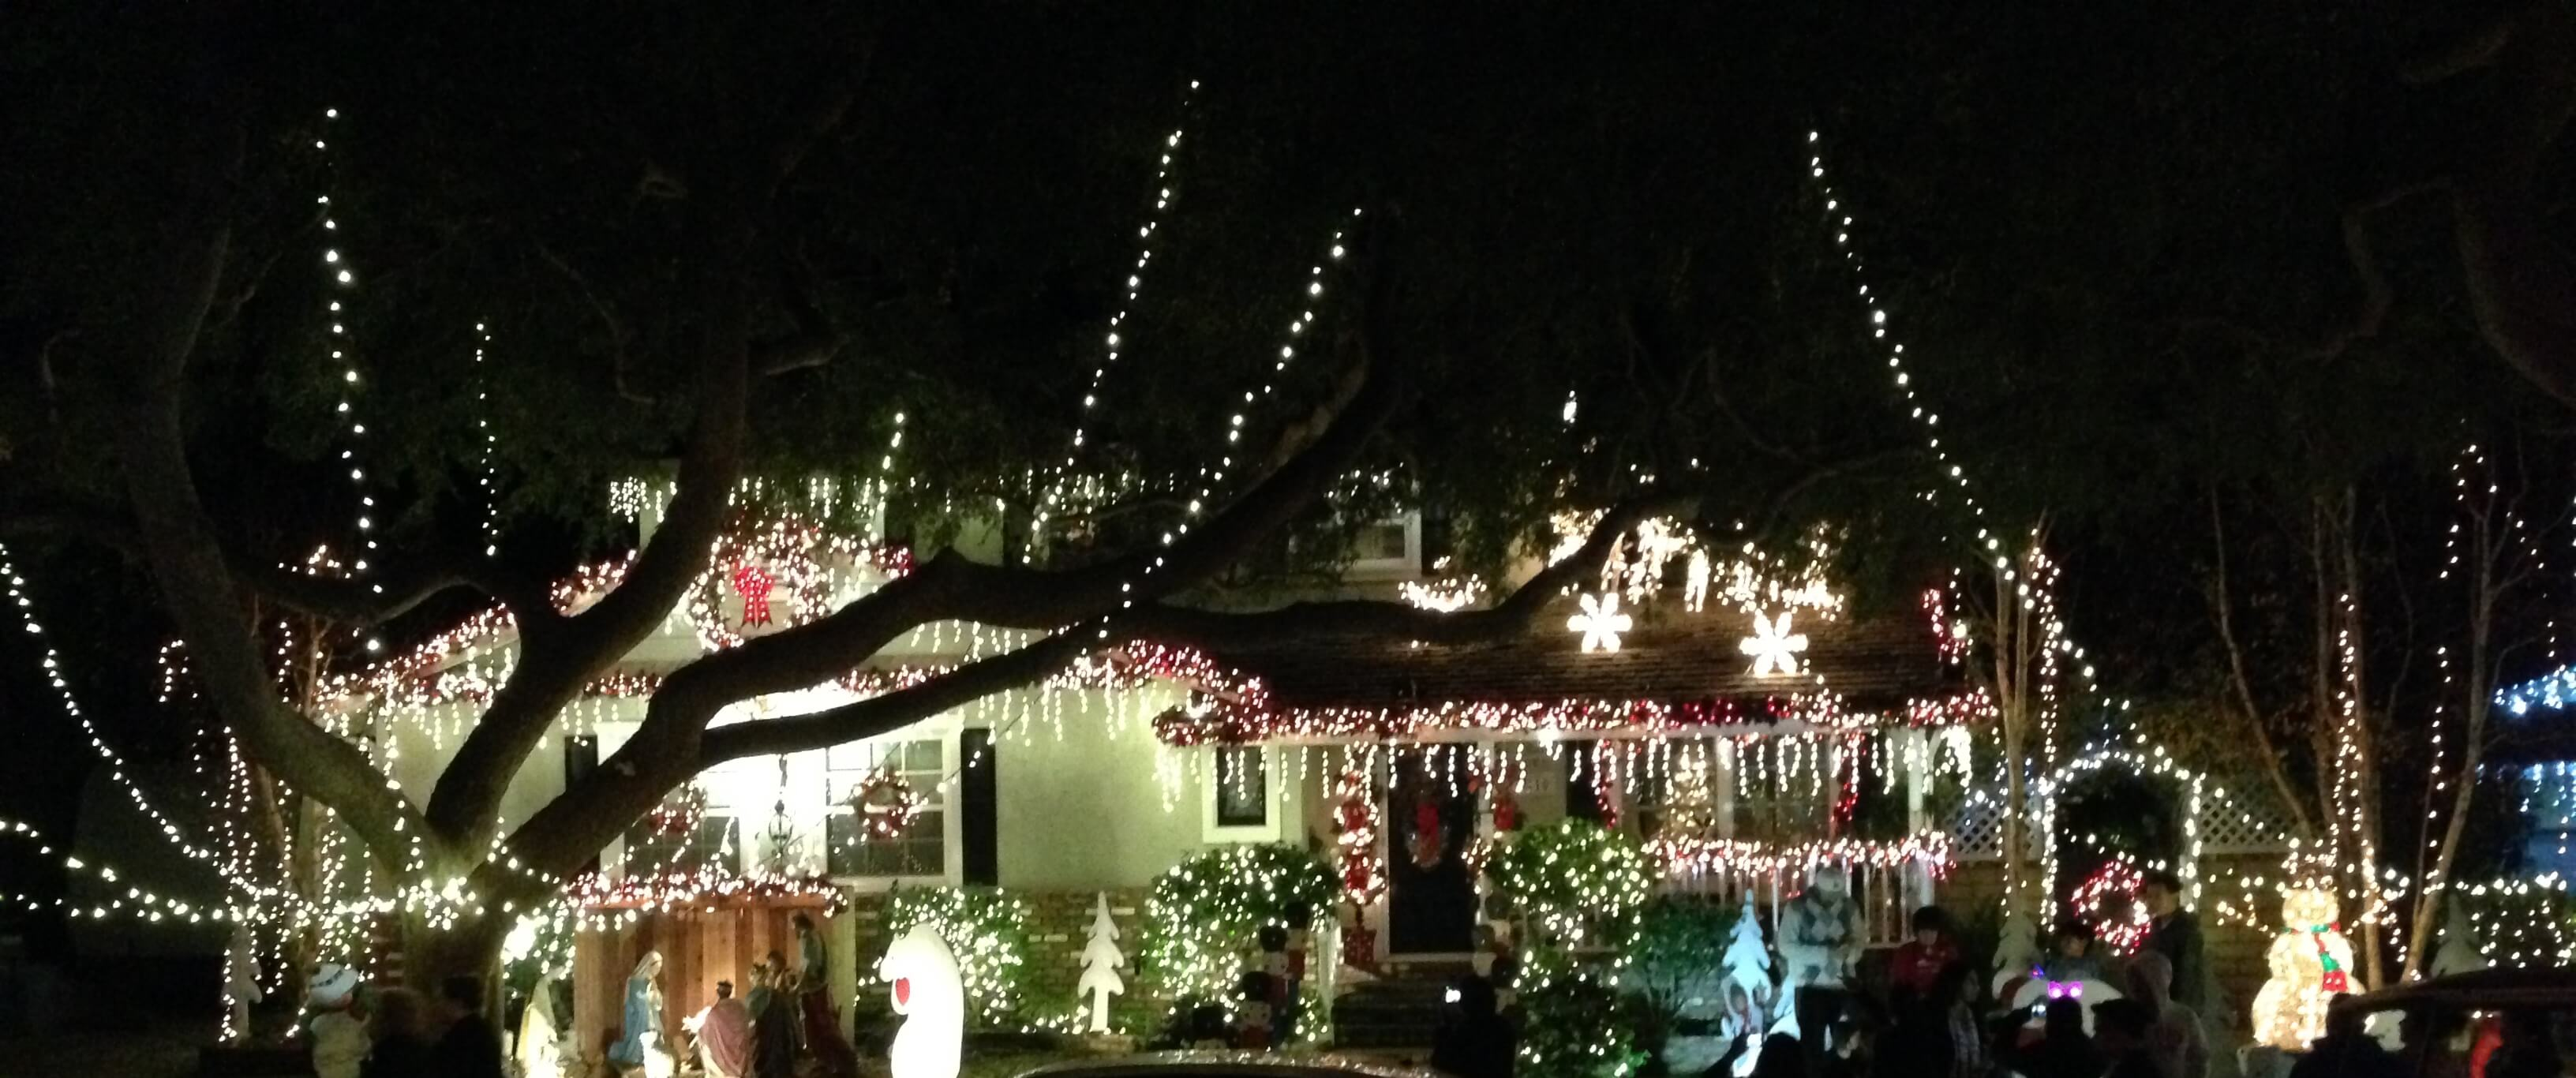 candy cane lane in torrance best of the south bay - Christmas Lights In Torrance